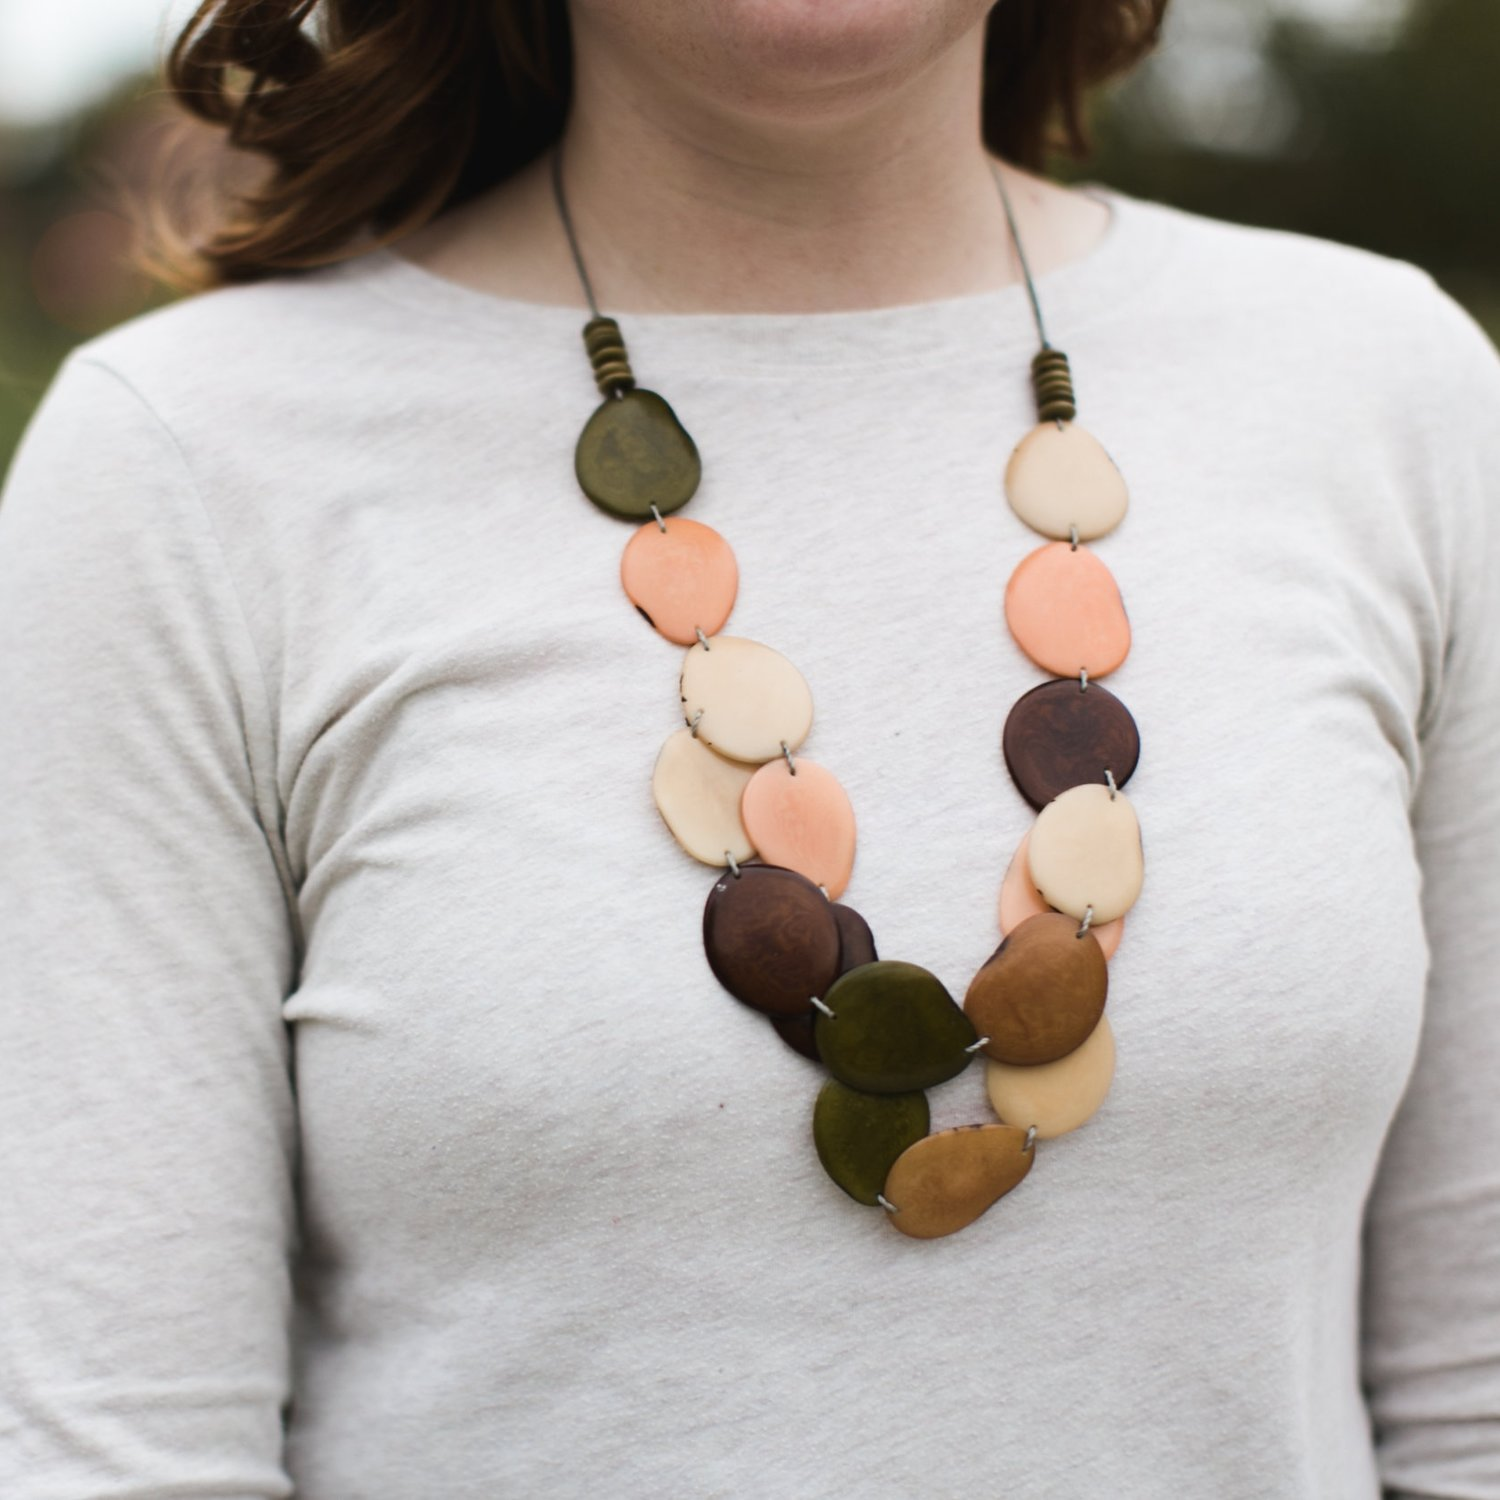 sn gear avocado necklace inti necklaces unique gifts products tagua